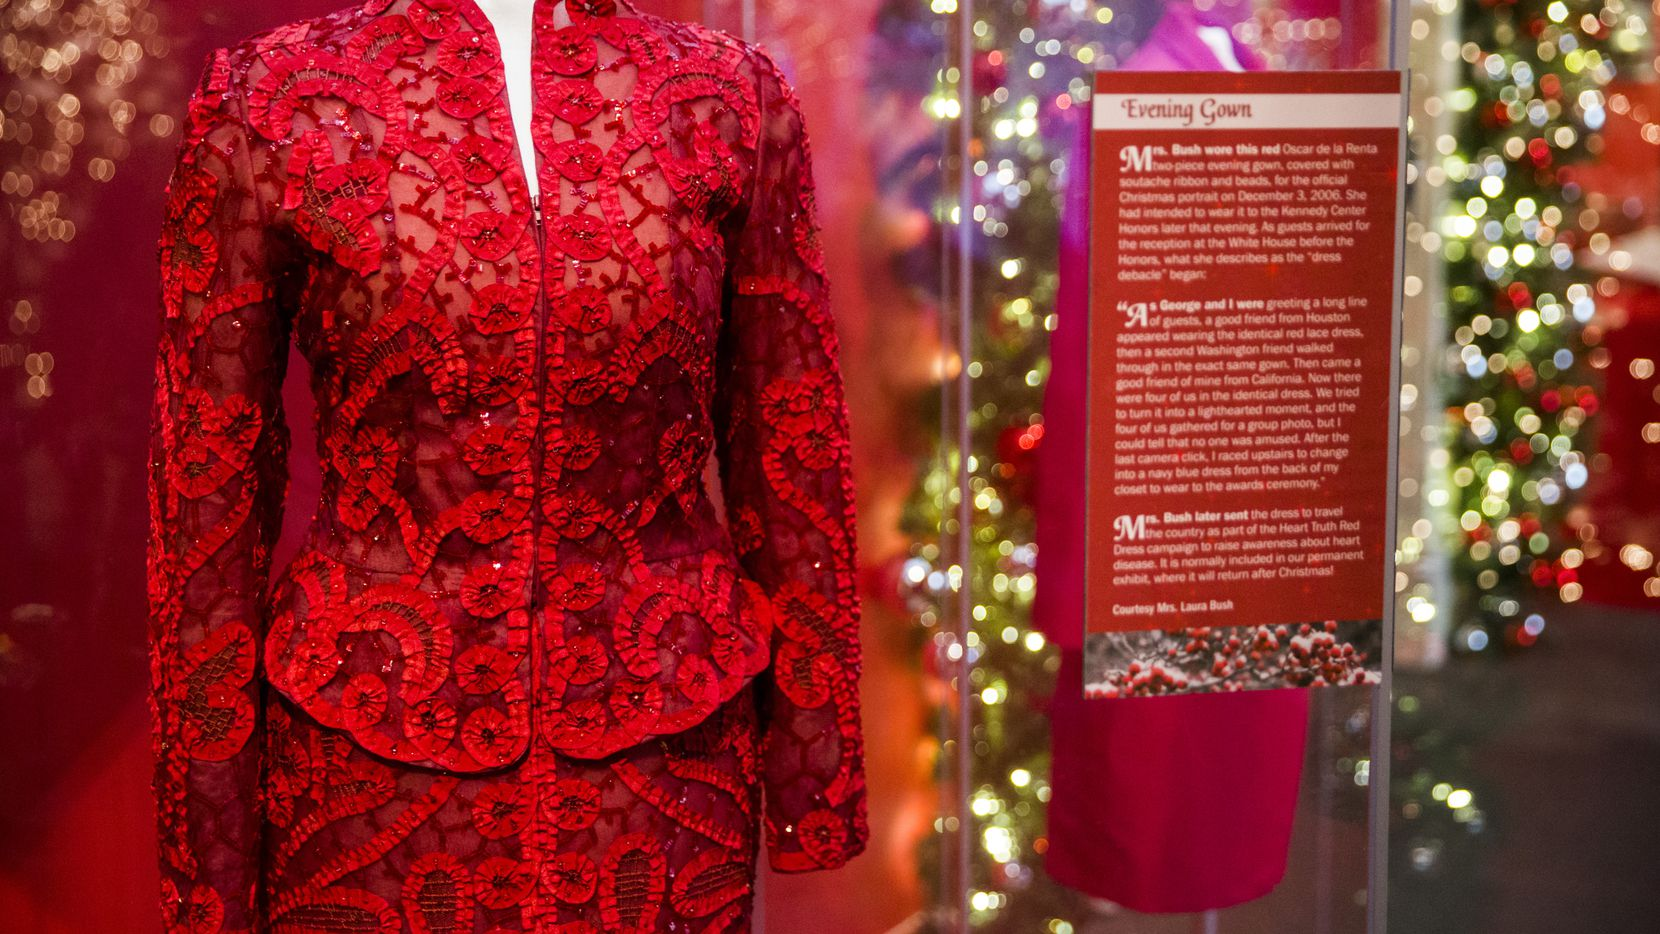 An Oscar de la Renta evening gown worn by Laura Bush was displayed in a Christmas exhibit at the George W. Bush Presidential Center and Library in 2018. When the Bushes arrived at their White House Christmas party in 2006, Laura noticed three of her friends wearing the same dress. She changed clothes before the party.